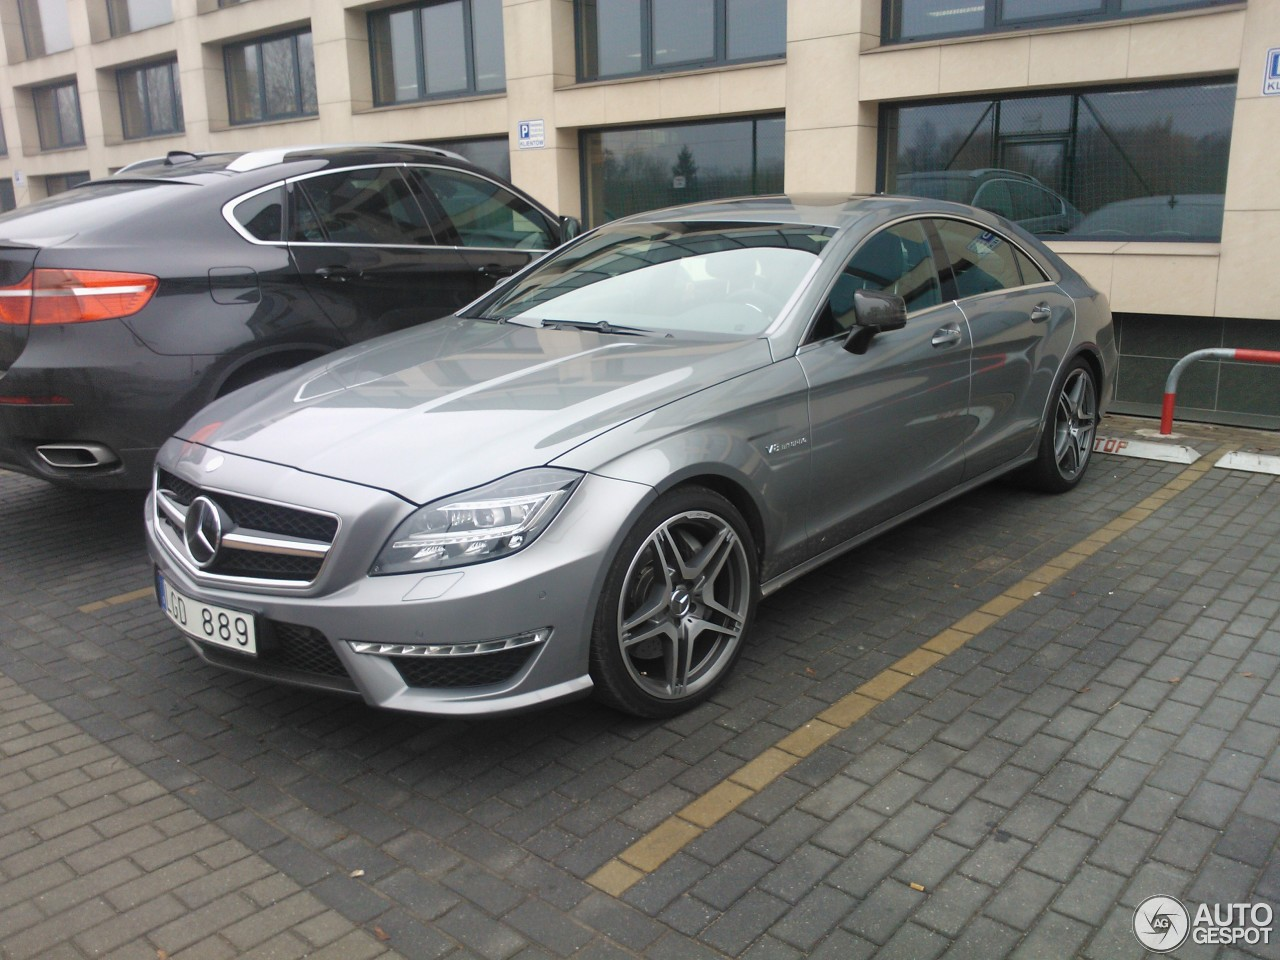 Mercedes benz cls 63 amg c218 19 november 2012 autogespot for Mercedes benz cls 63 amg price